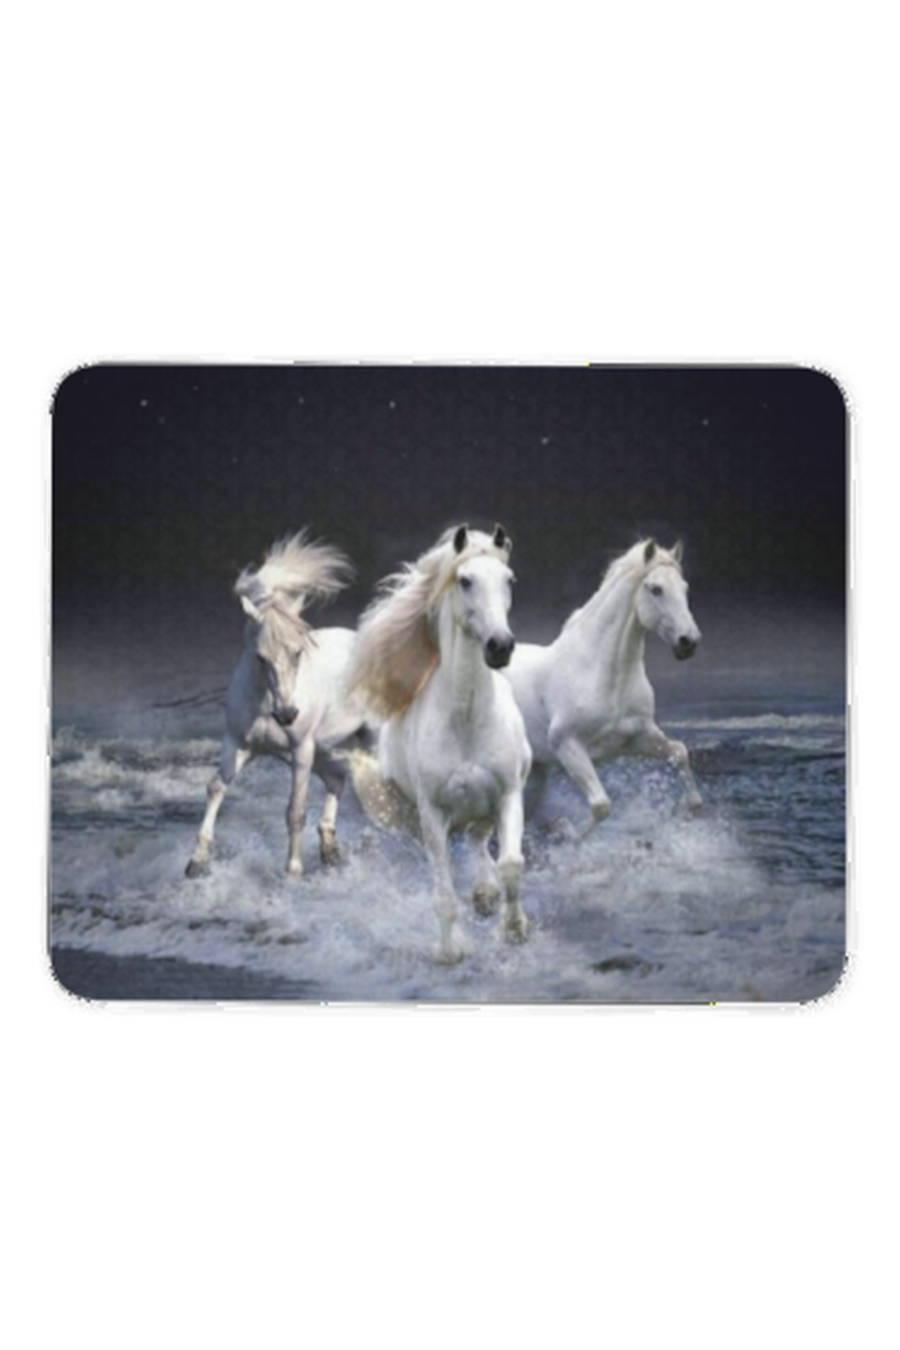 Three White Horses - Mouse pad